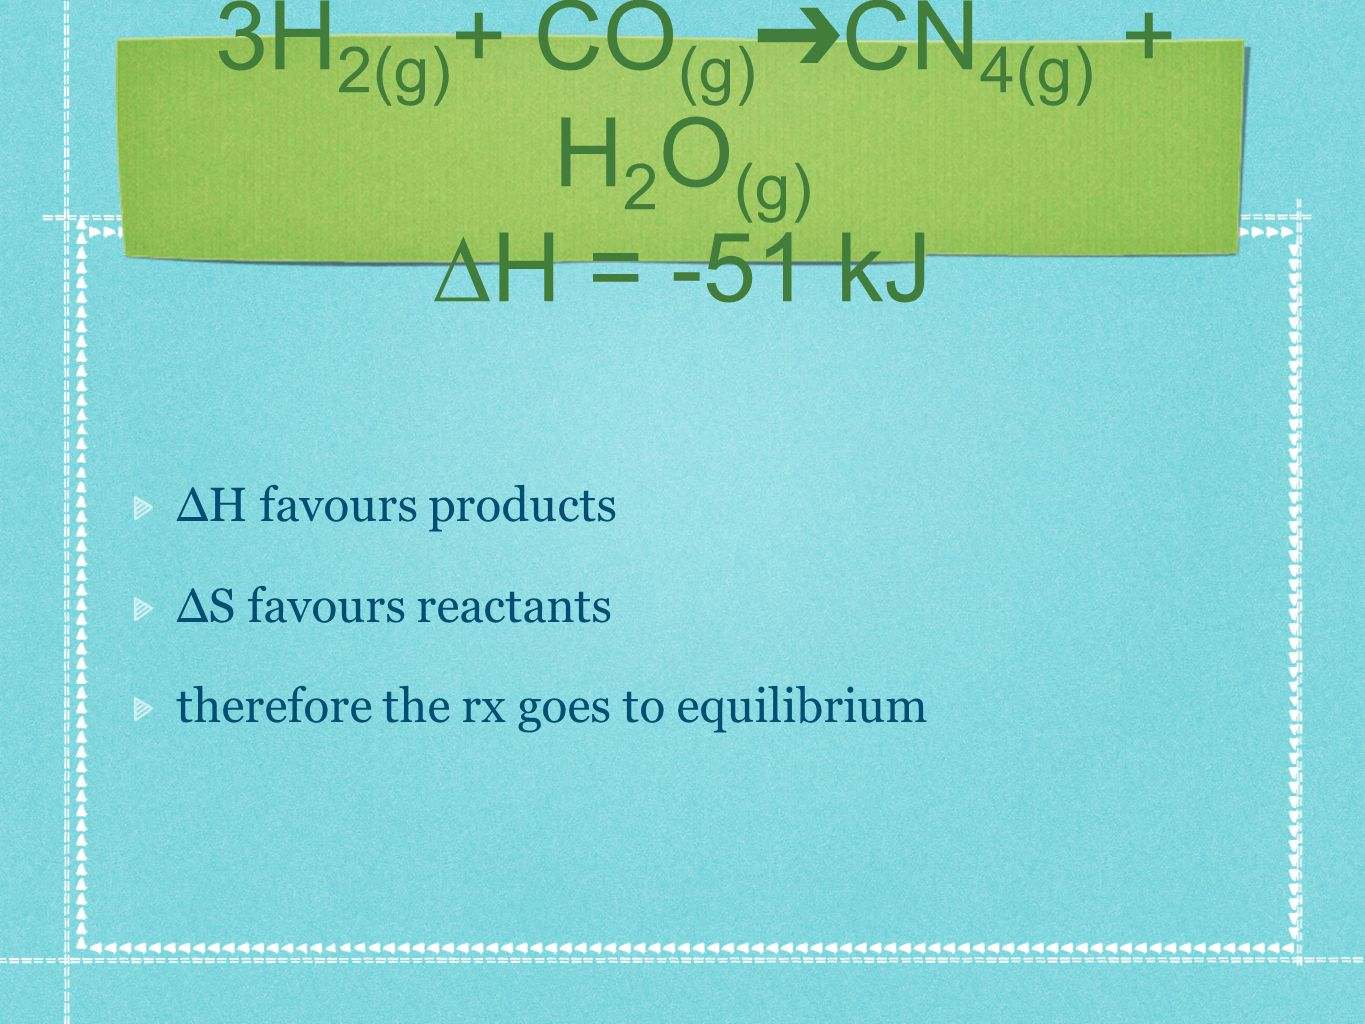 3H 2(g) + CO (g) CN 4(g) + H 2 O (g) H = -51 kJ H favours products S favours reactants therefore the rx goes to equilibrium